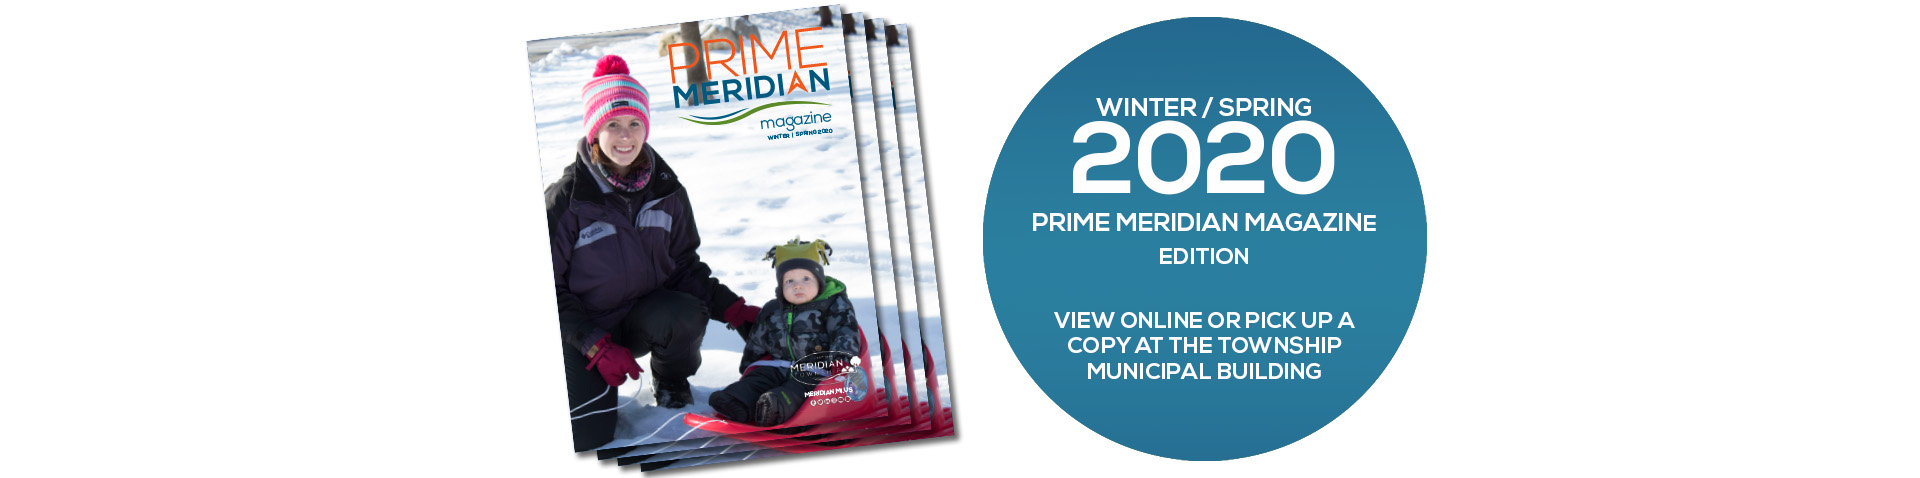 PMM winter spring edition